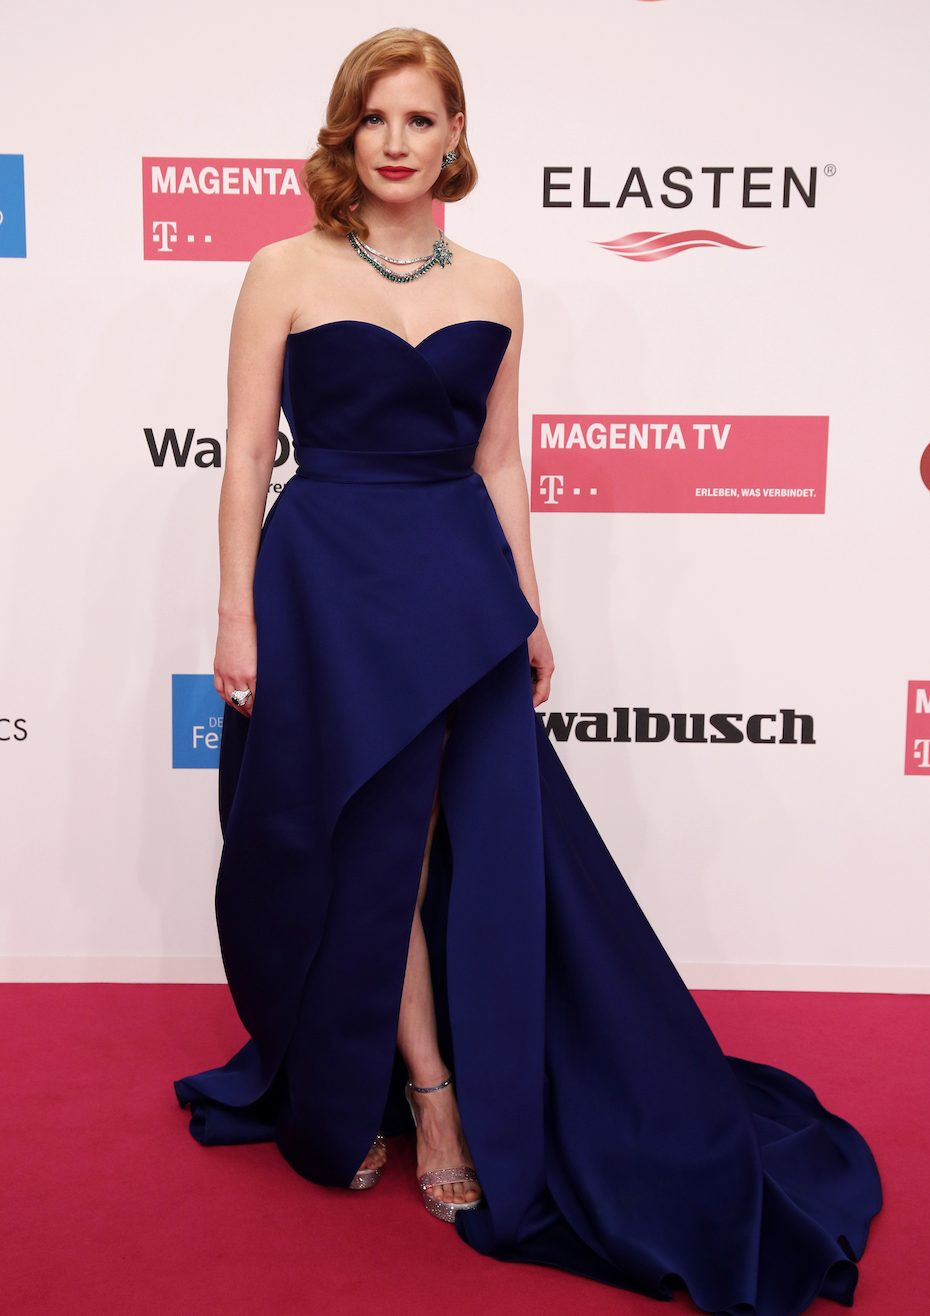 BERLIN, GERMANY - MARCH 30: Jessica Chastain attends the Goldene Kamera at Tempelhof Airport on March 30, 2019 in Berlin, Germany. (Photo by Christian Marquardt/Getty Images)